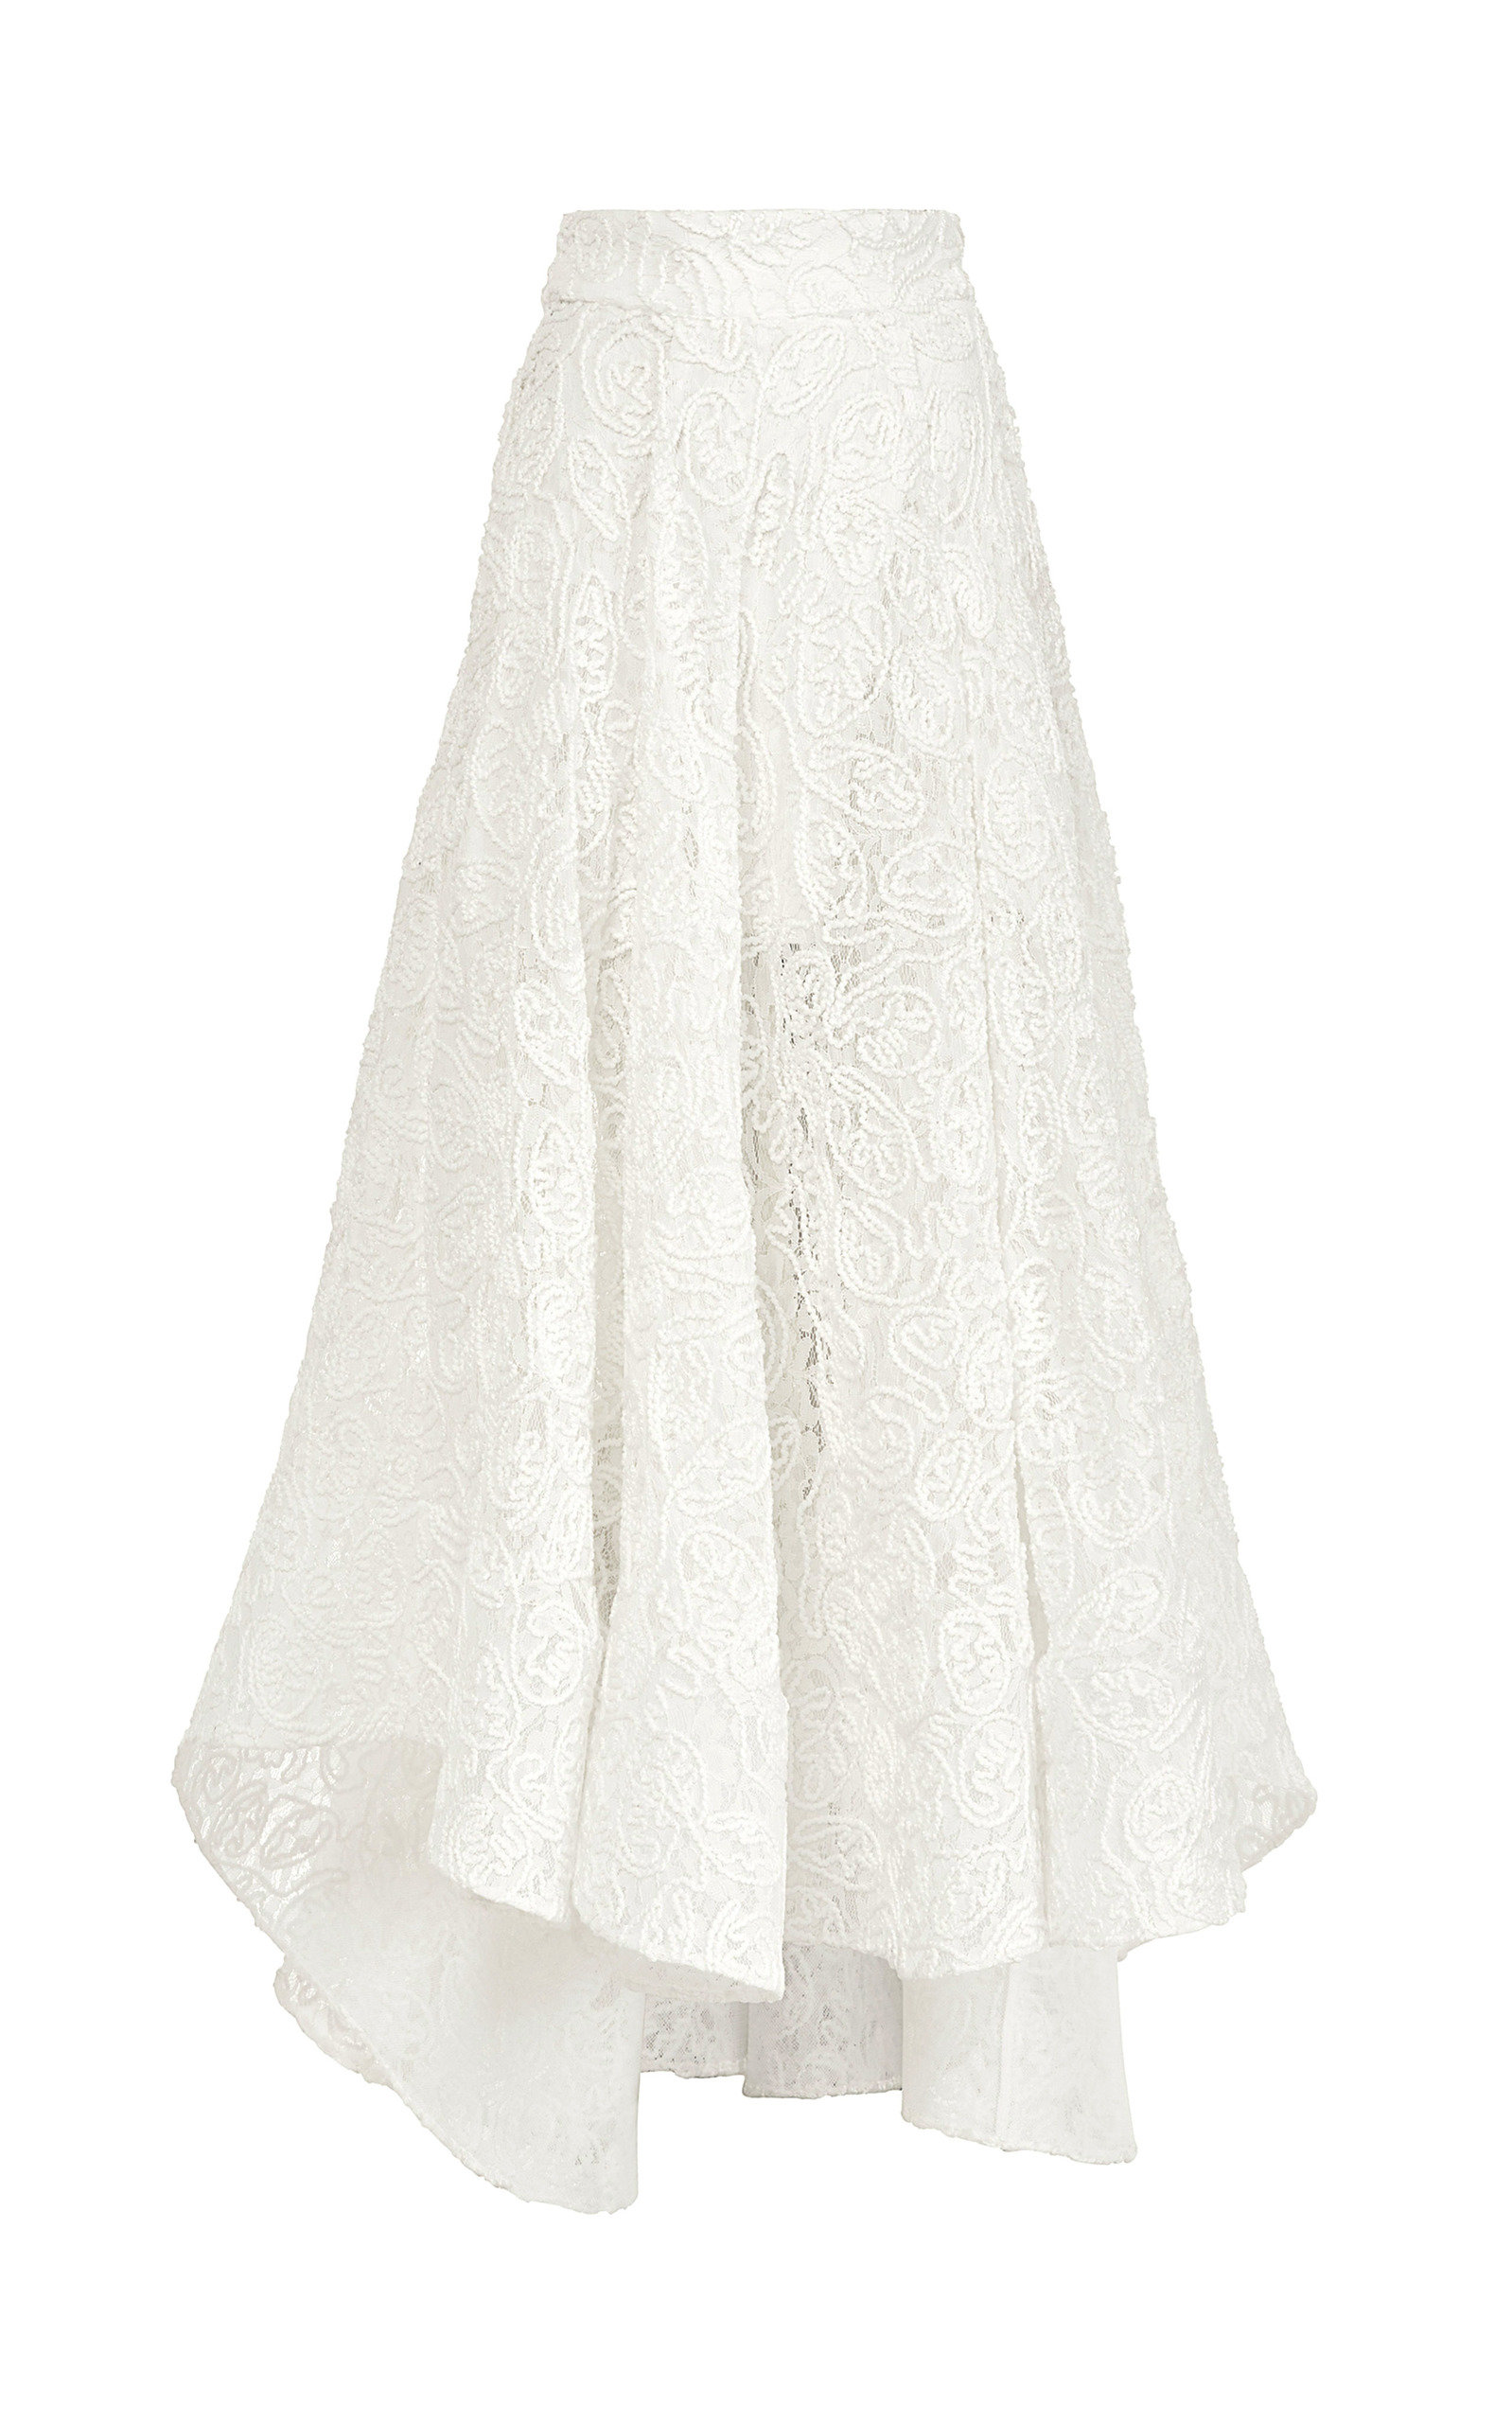 MATICEVSKI PROMISING EMBROIDERED LACE MIDI SKIRT